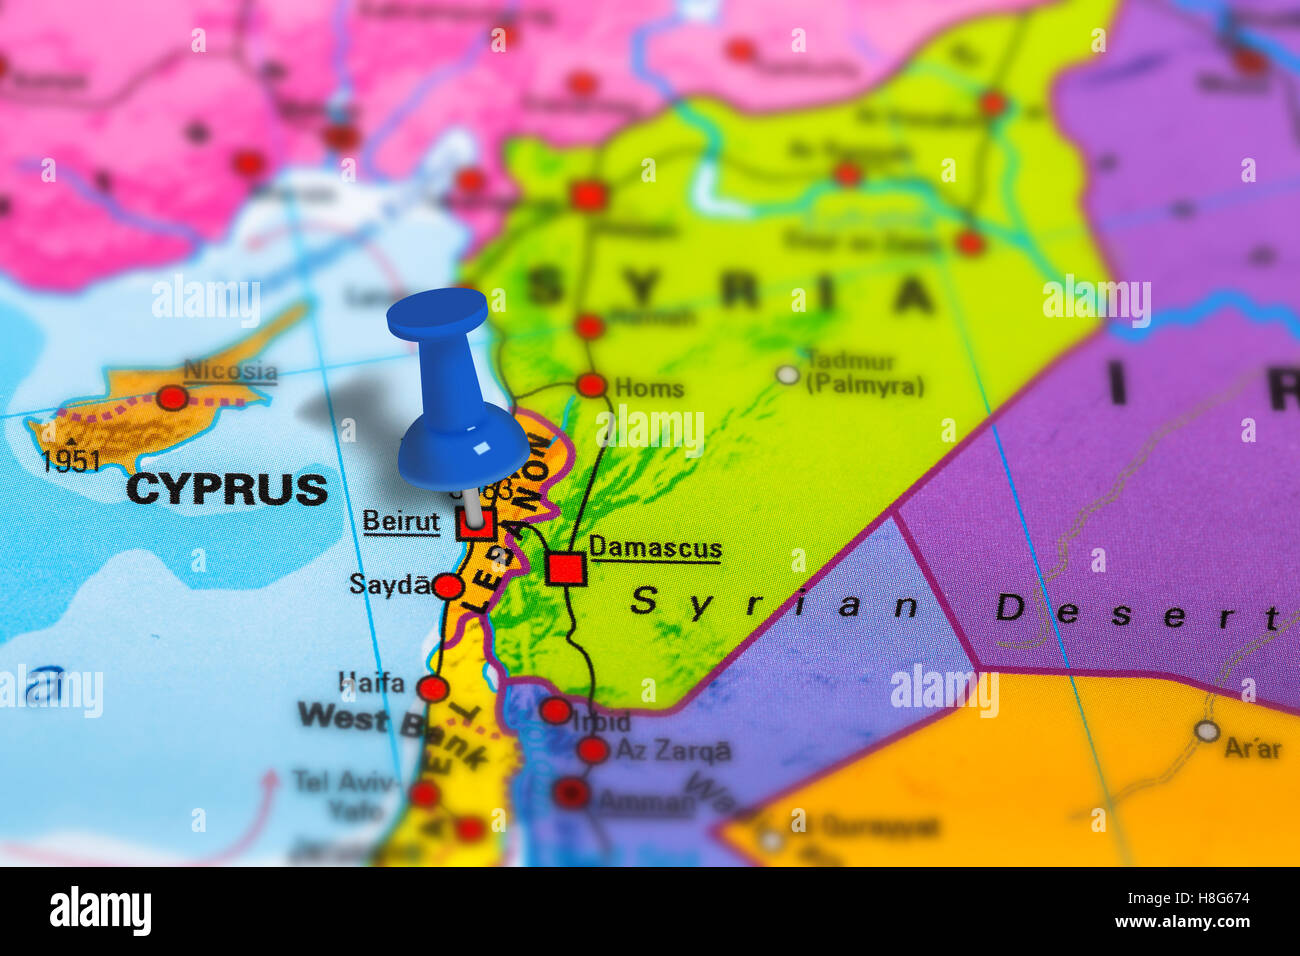 Beirut Lebanon Map Stock Photo Royalty Free Image Alamy - Lebanon map